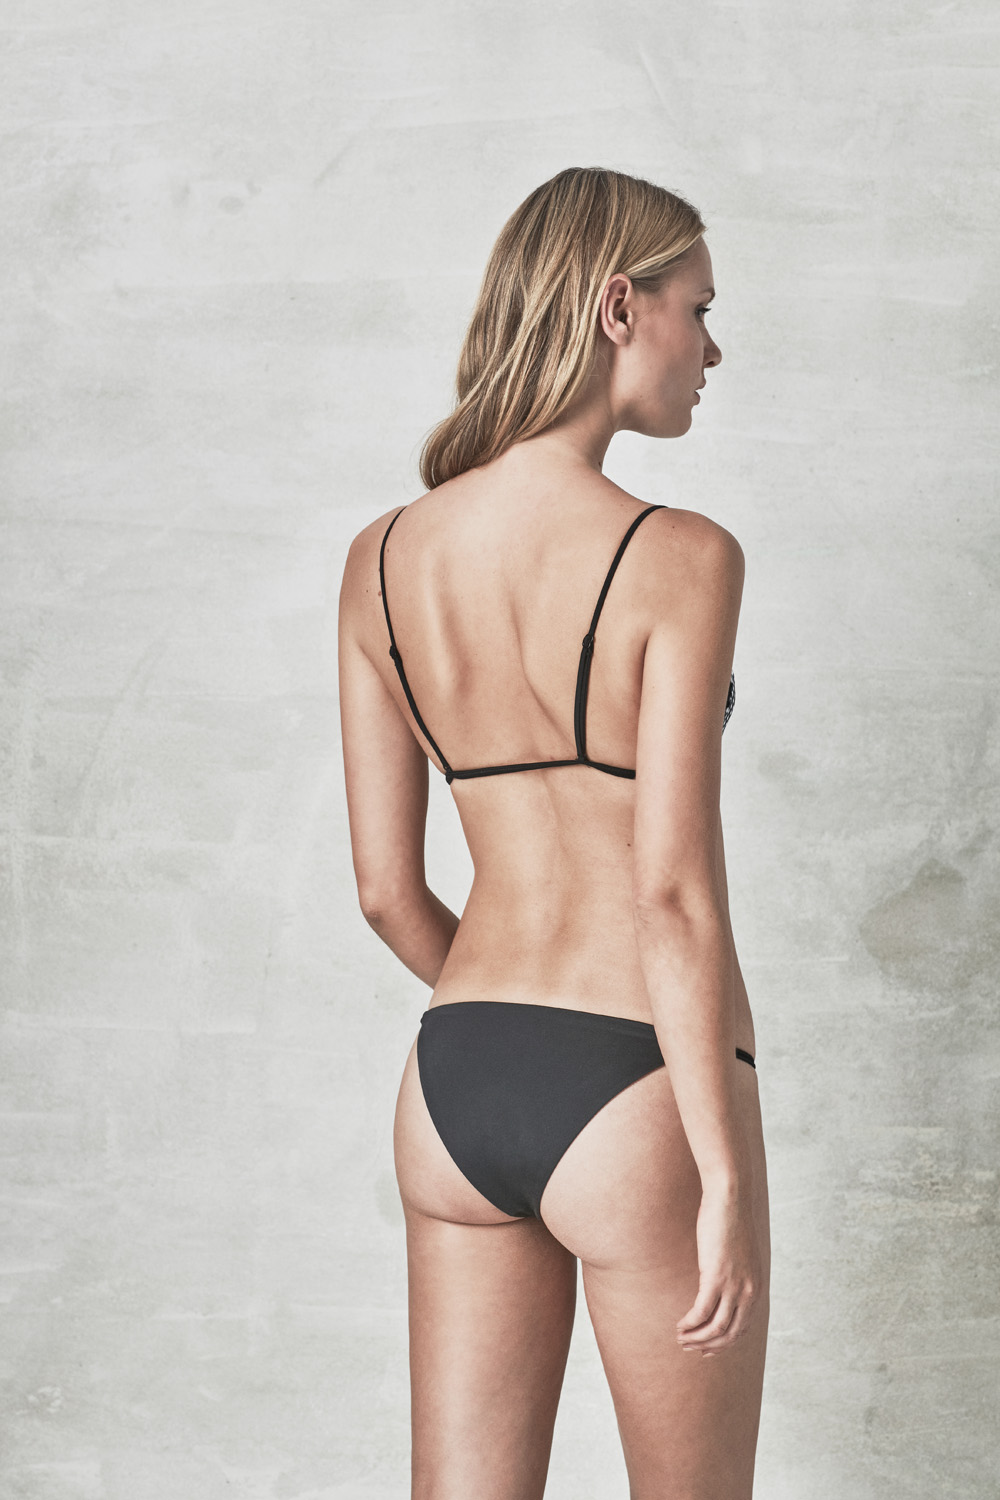 MANA + MILOS, by NOW_THEN eco swimwear / bikini ecológico